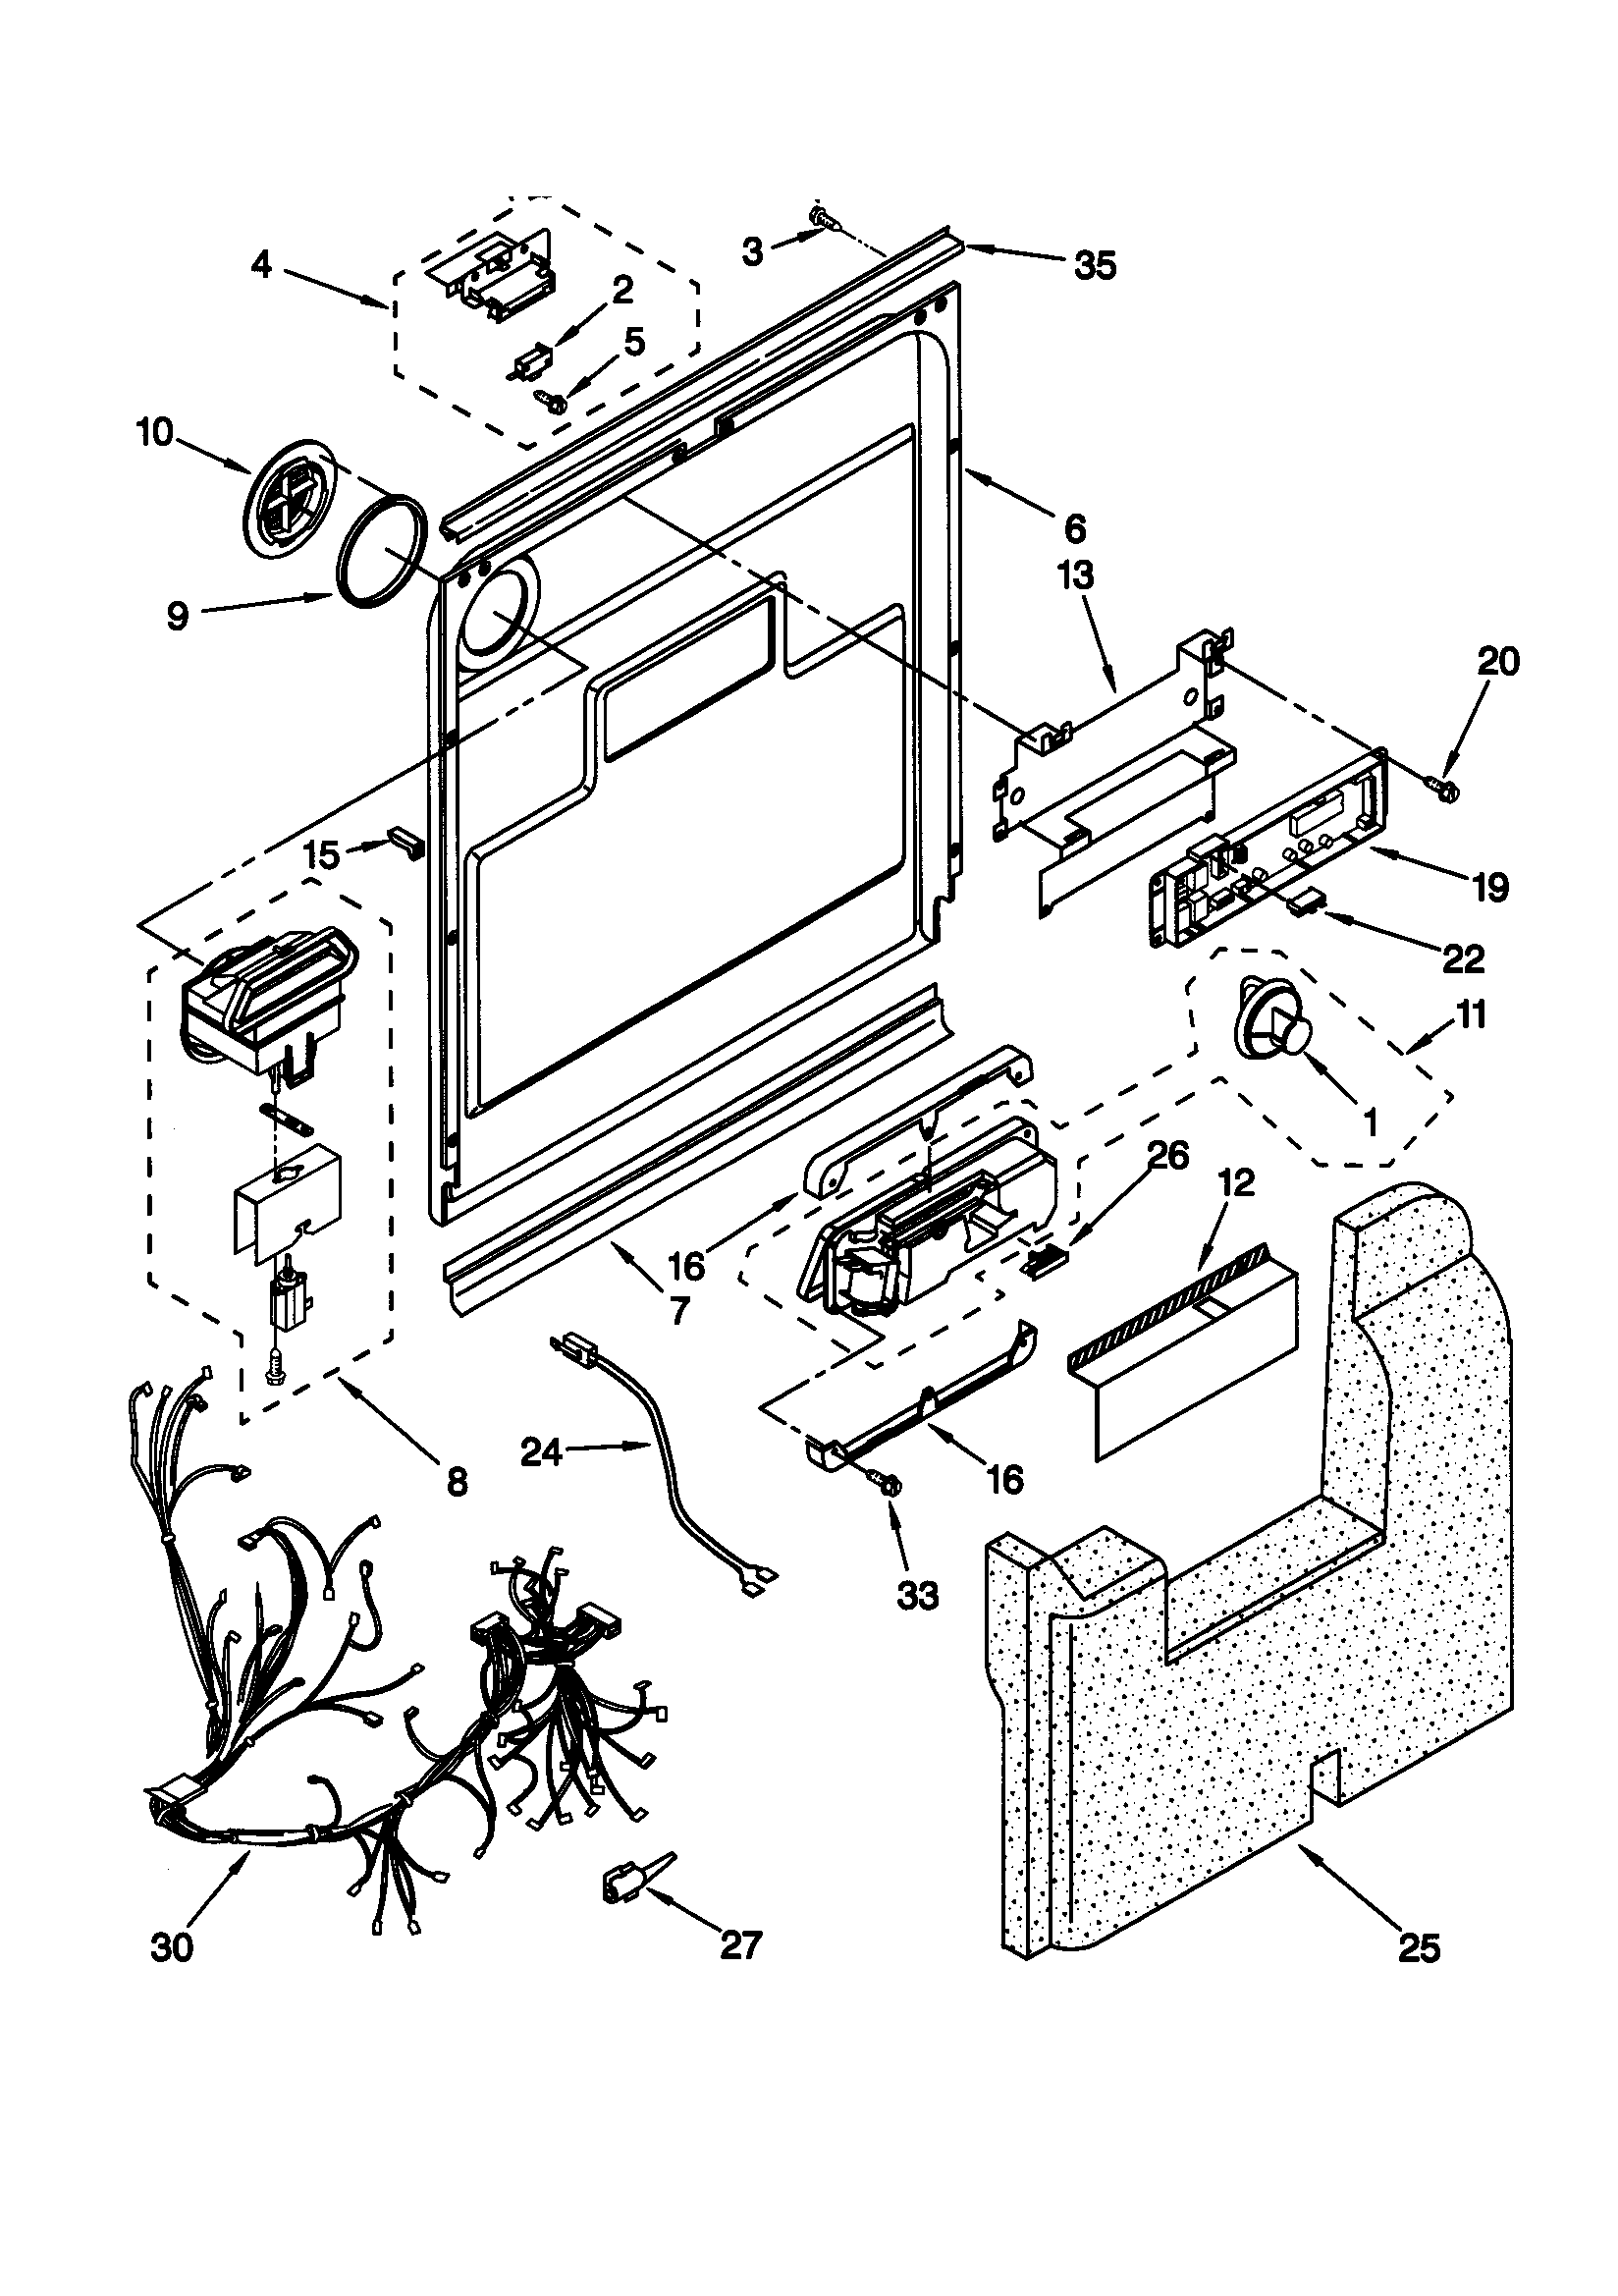 Kenmore Elite 665 Dishwasher Wiring Diagram on Kenmore Elite 665 Dishwasher Wiring Diagram